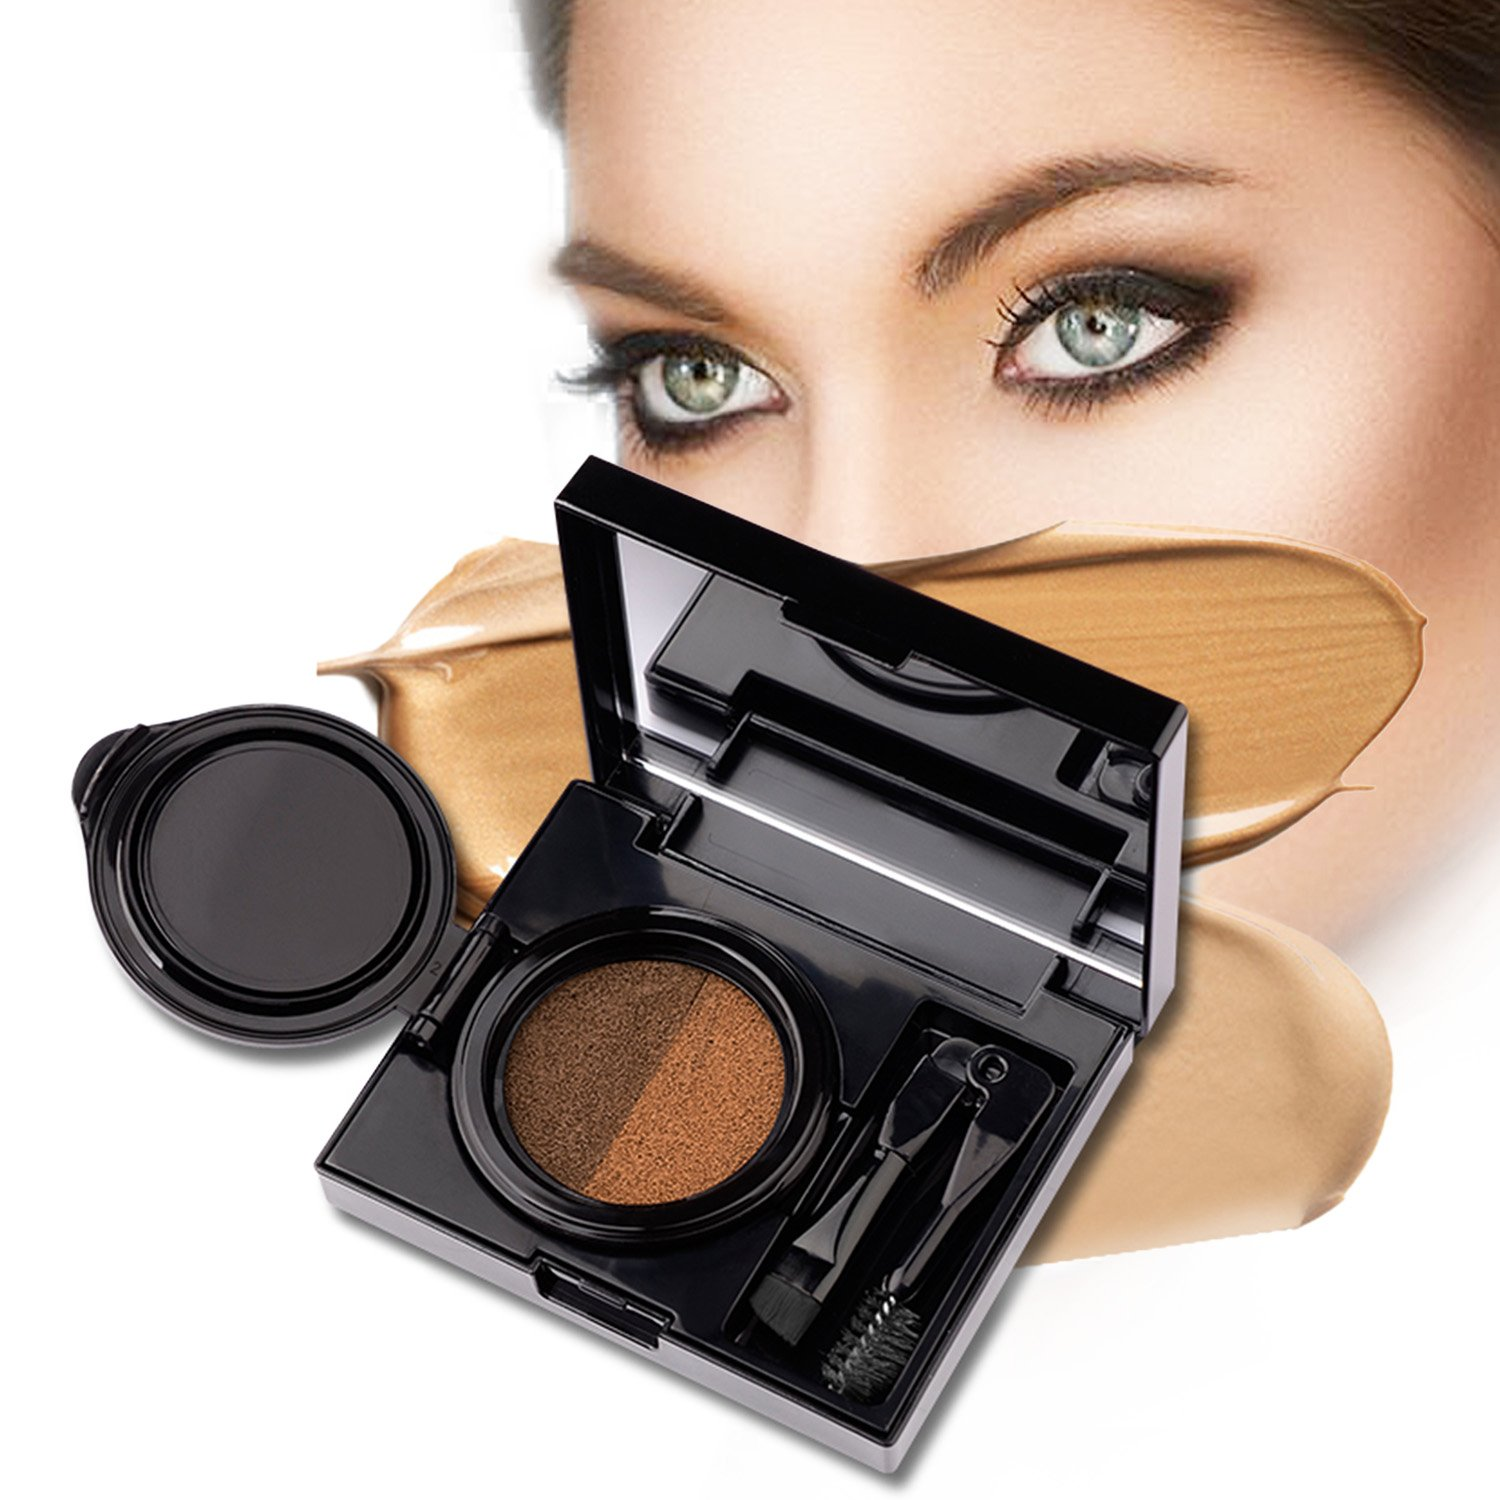 Turelifes Eyebrow Gel Brow Cushion Natural Eyebrow Powder Waterproof with Dark Brown and Light Brown for Perfect Brow